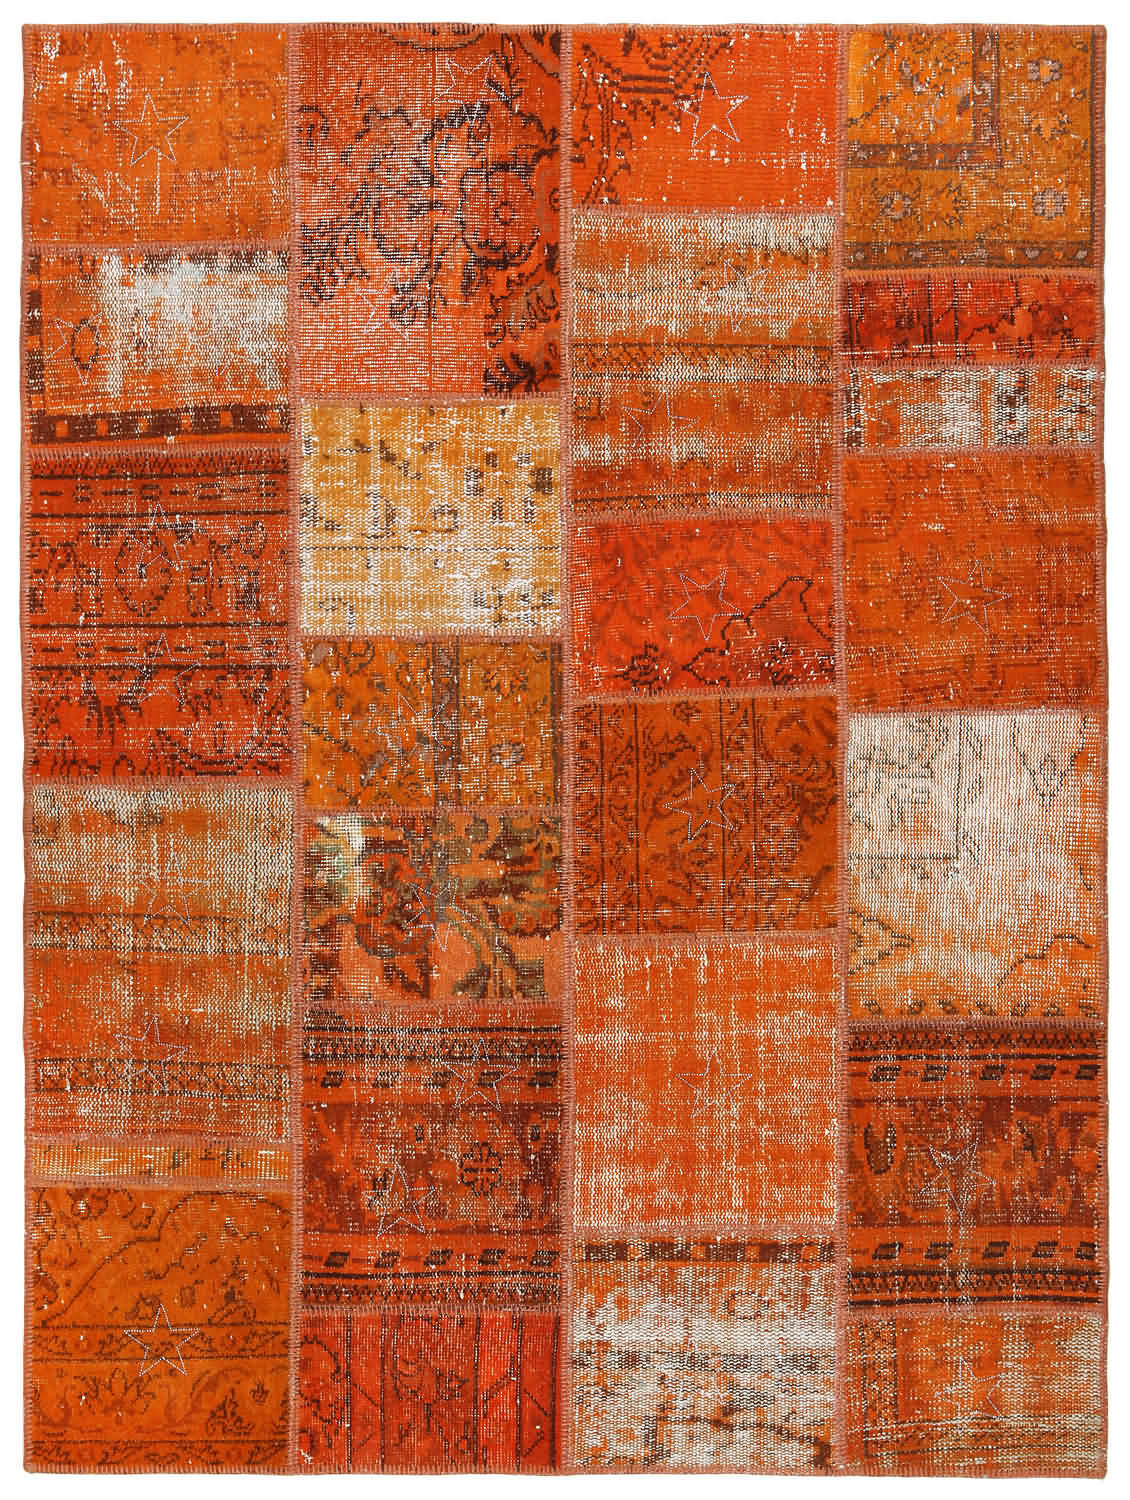 84x59 Inces Wool Rug VINTAGE Turkish Rug Carpet Orange Color Traditional Embroidered Handwoven Naturel Wool Overdyed Rug - VintageCarpets